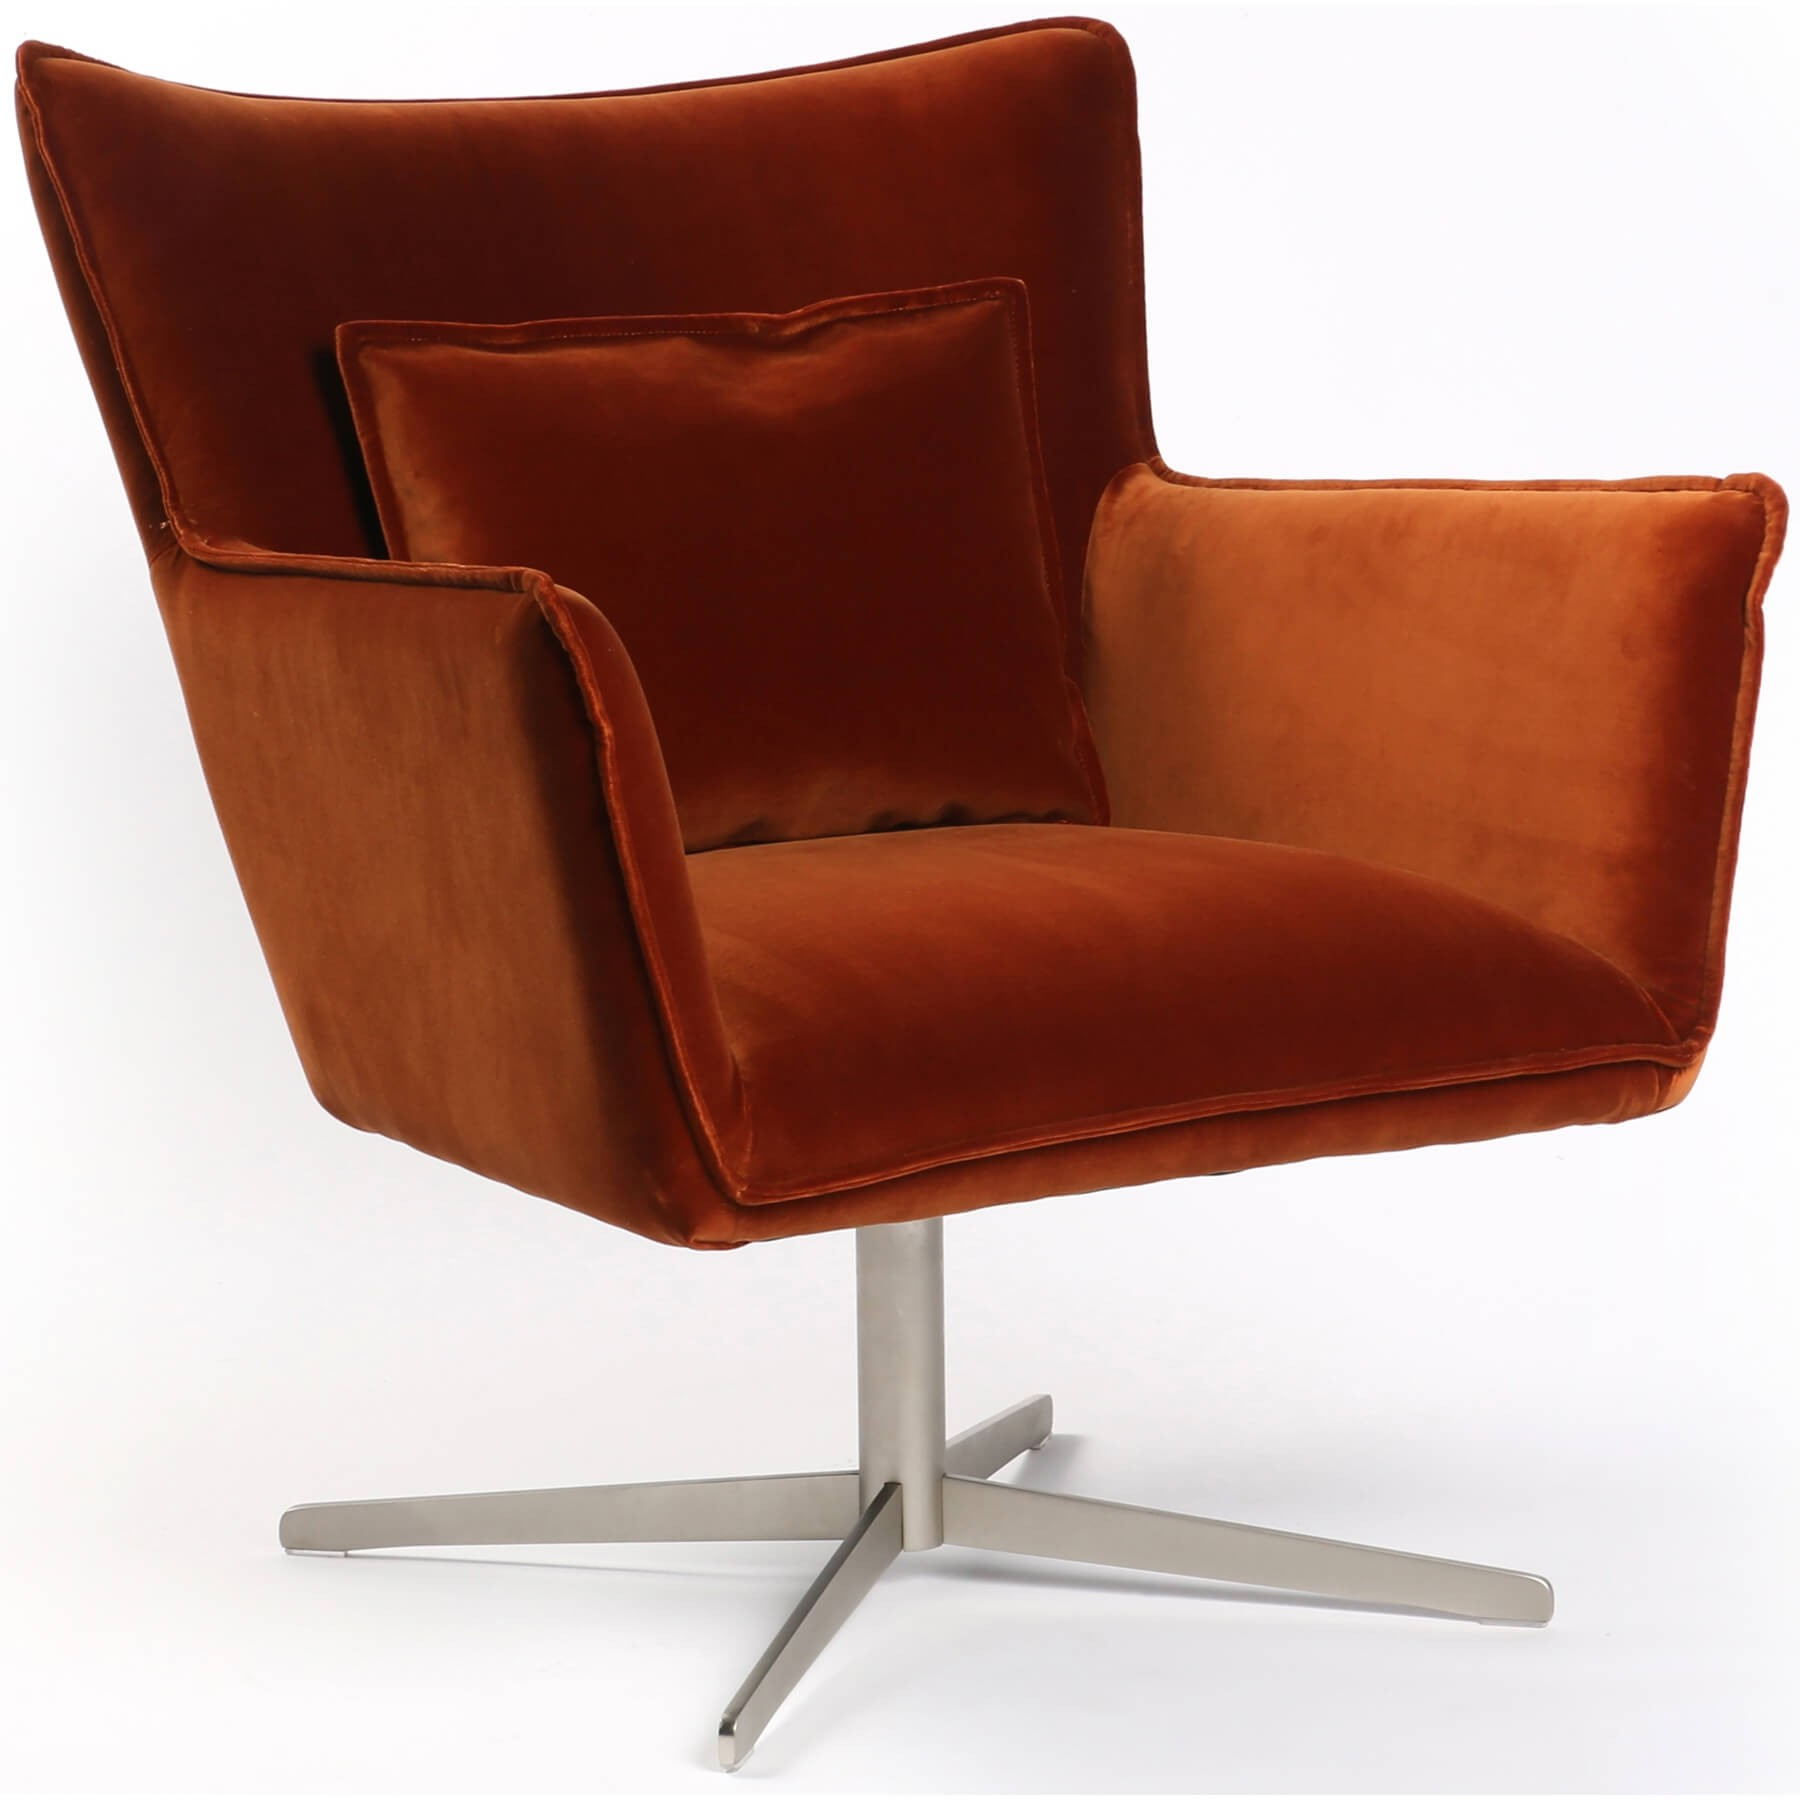 Jacob Swivel Chair, Sienna – Recliners, Swivel, Gliders – Chairs Throughout Swivel Tobacco Leather Chairs (Image 9 of 20)